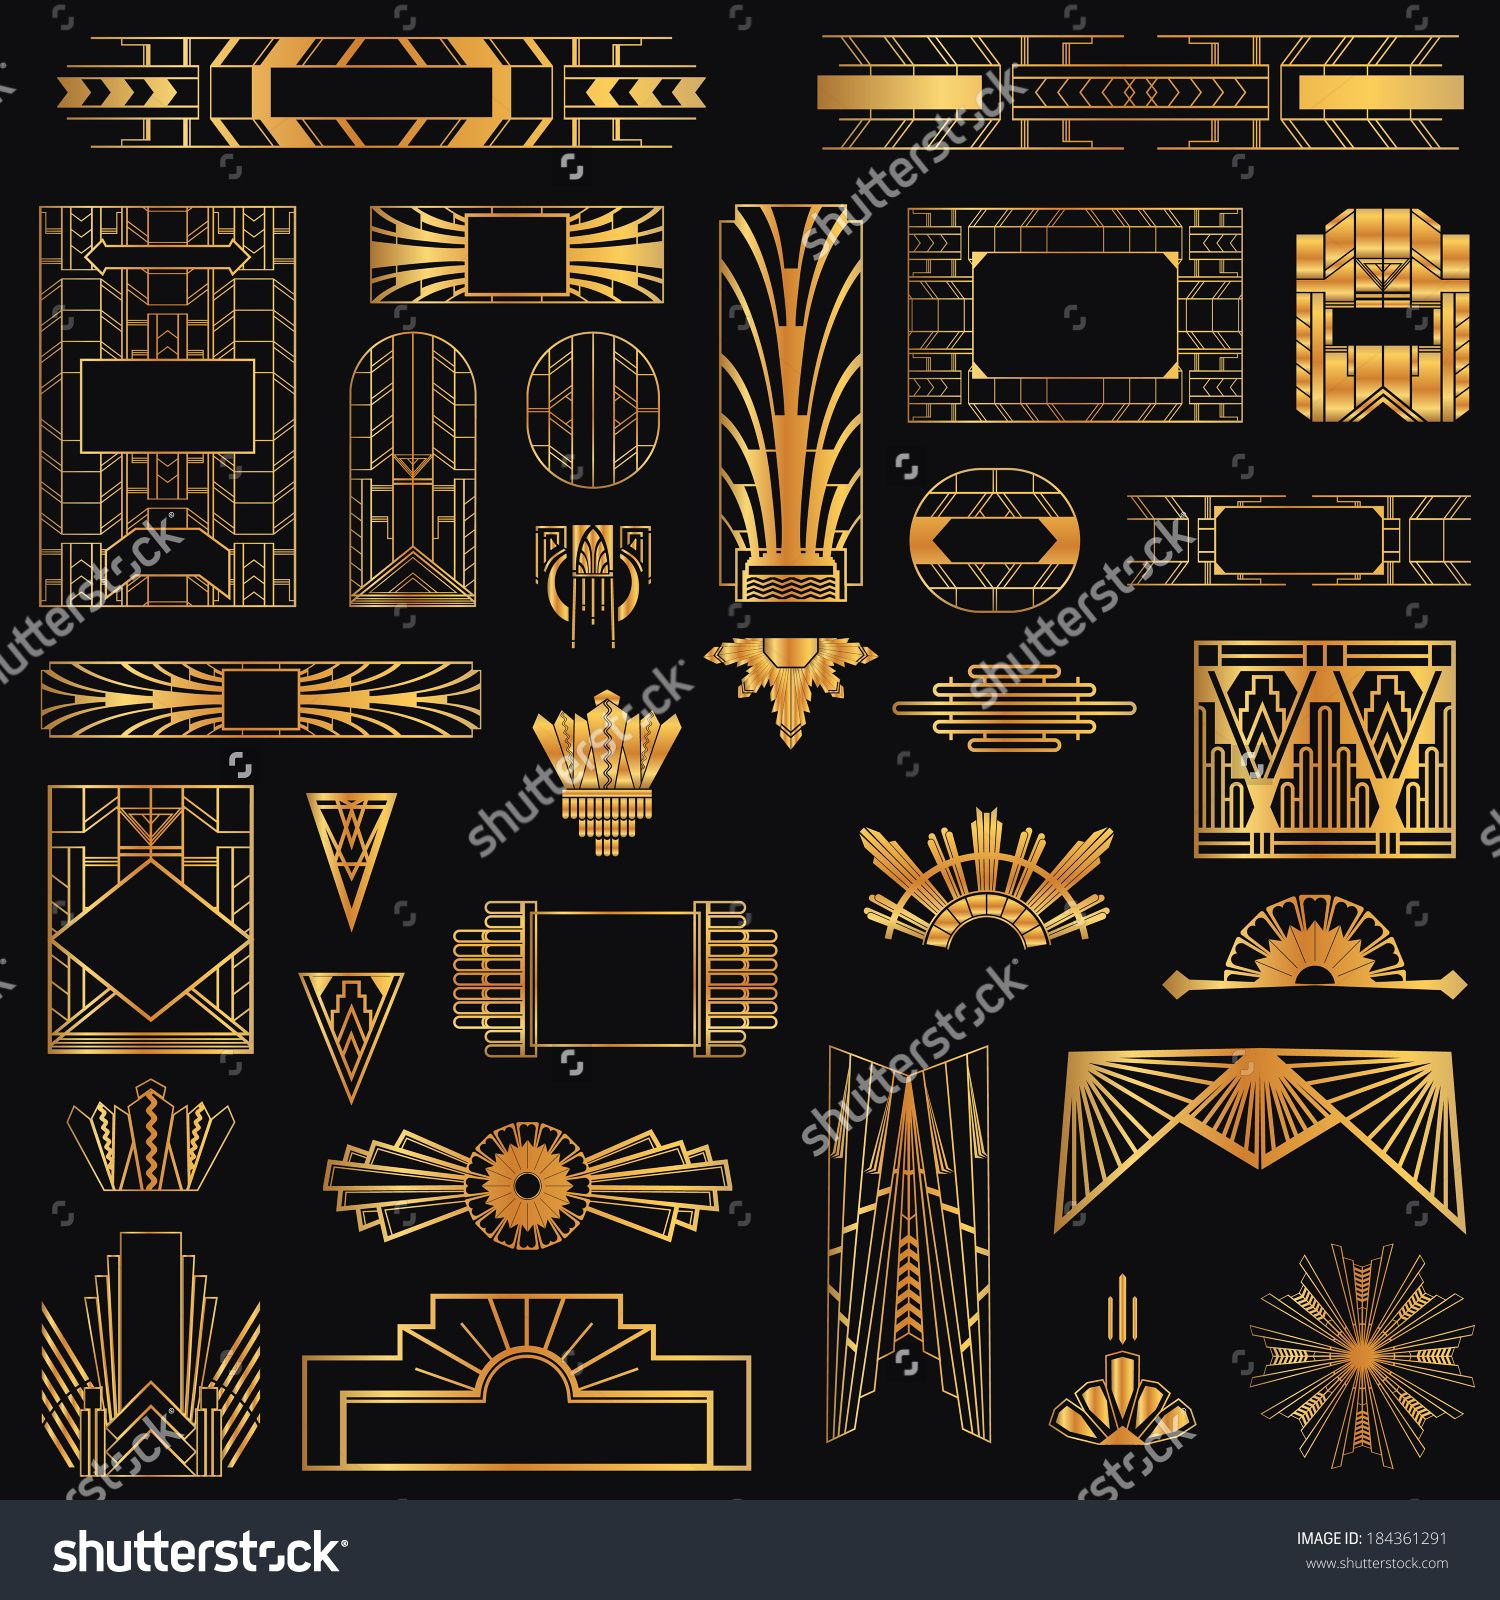 Photo Art Deco Art Deco Elements Graphic Designs Google Search Art